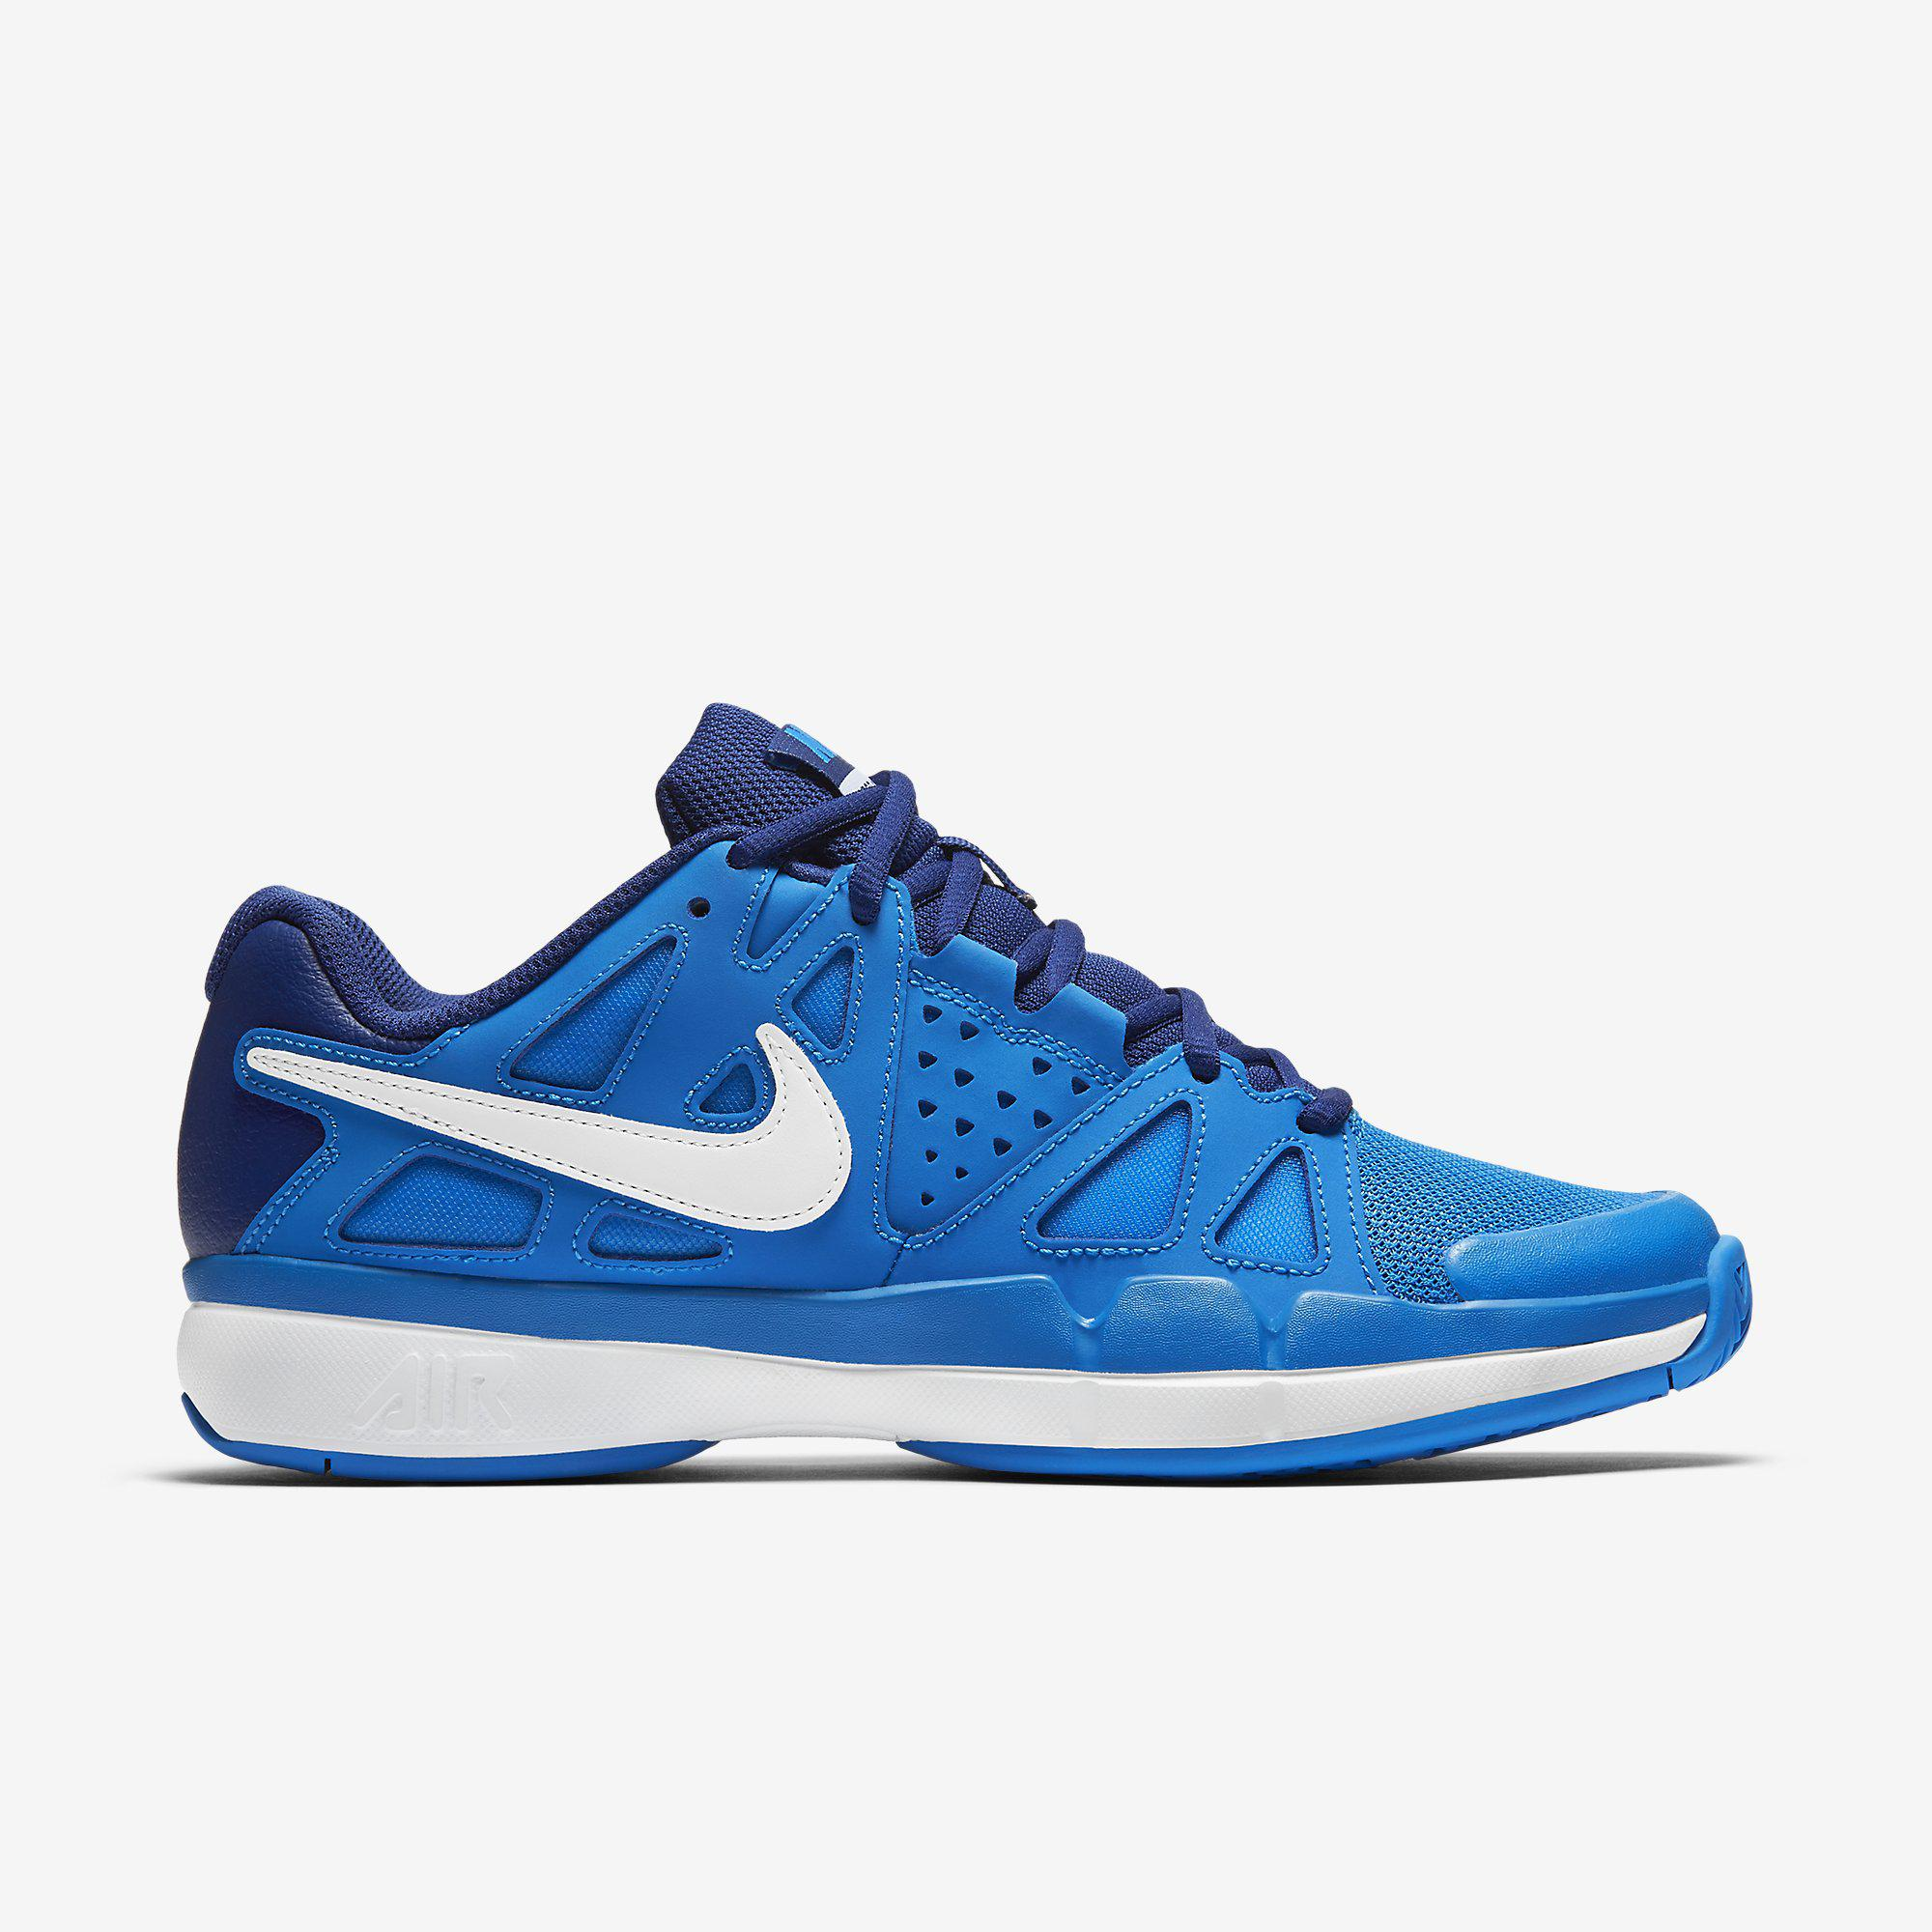 Blue Womens Nike Tennis Shoes